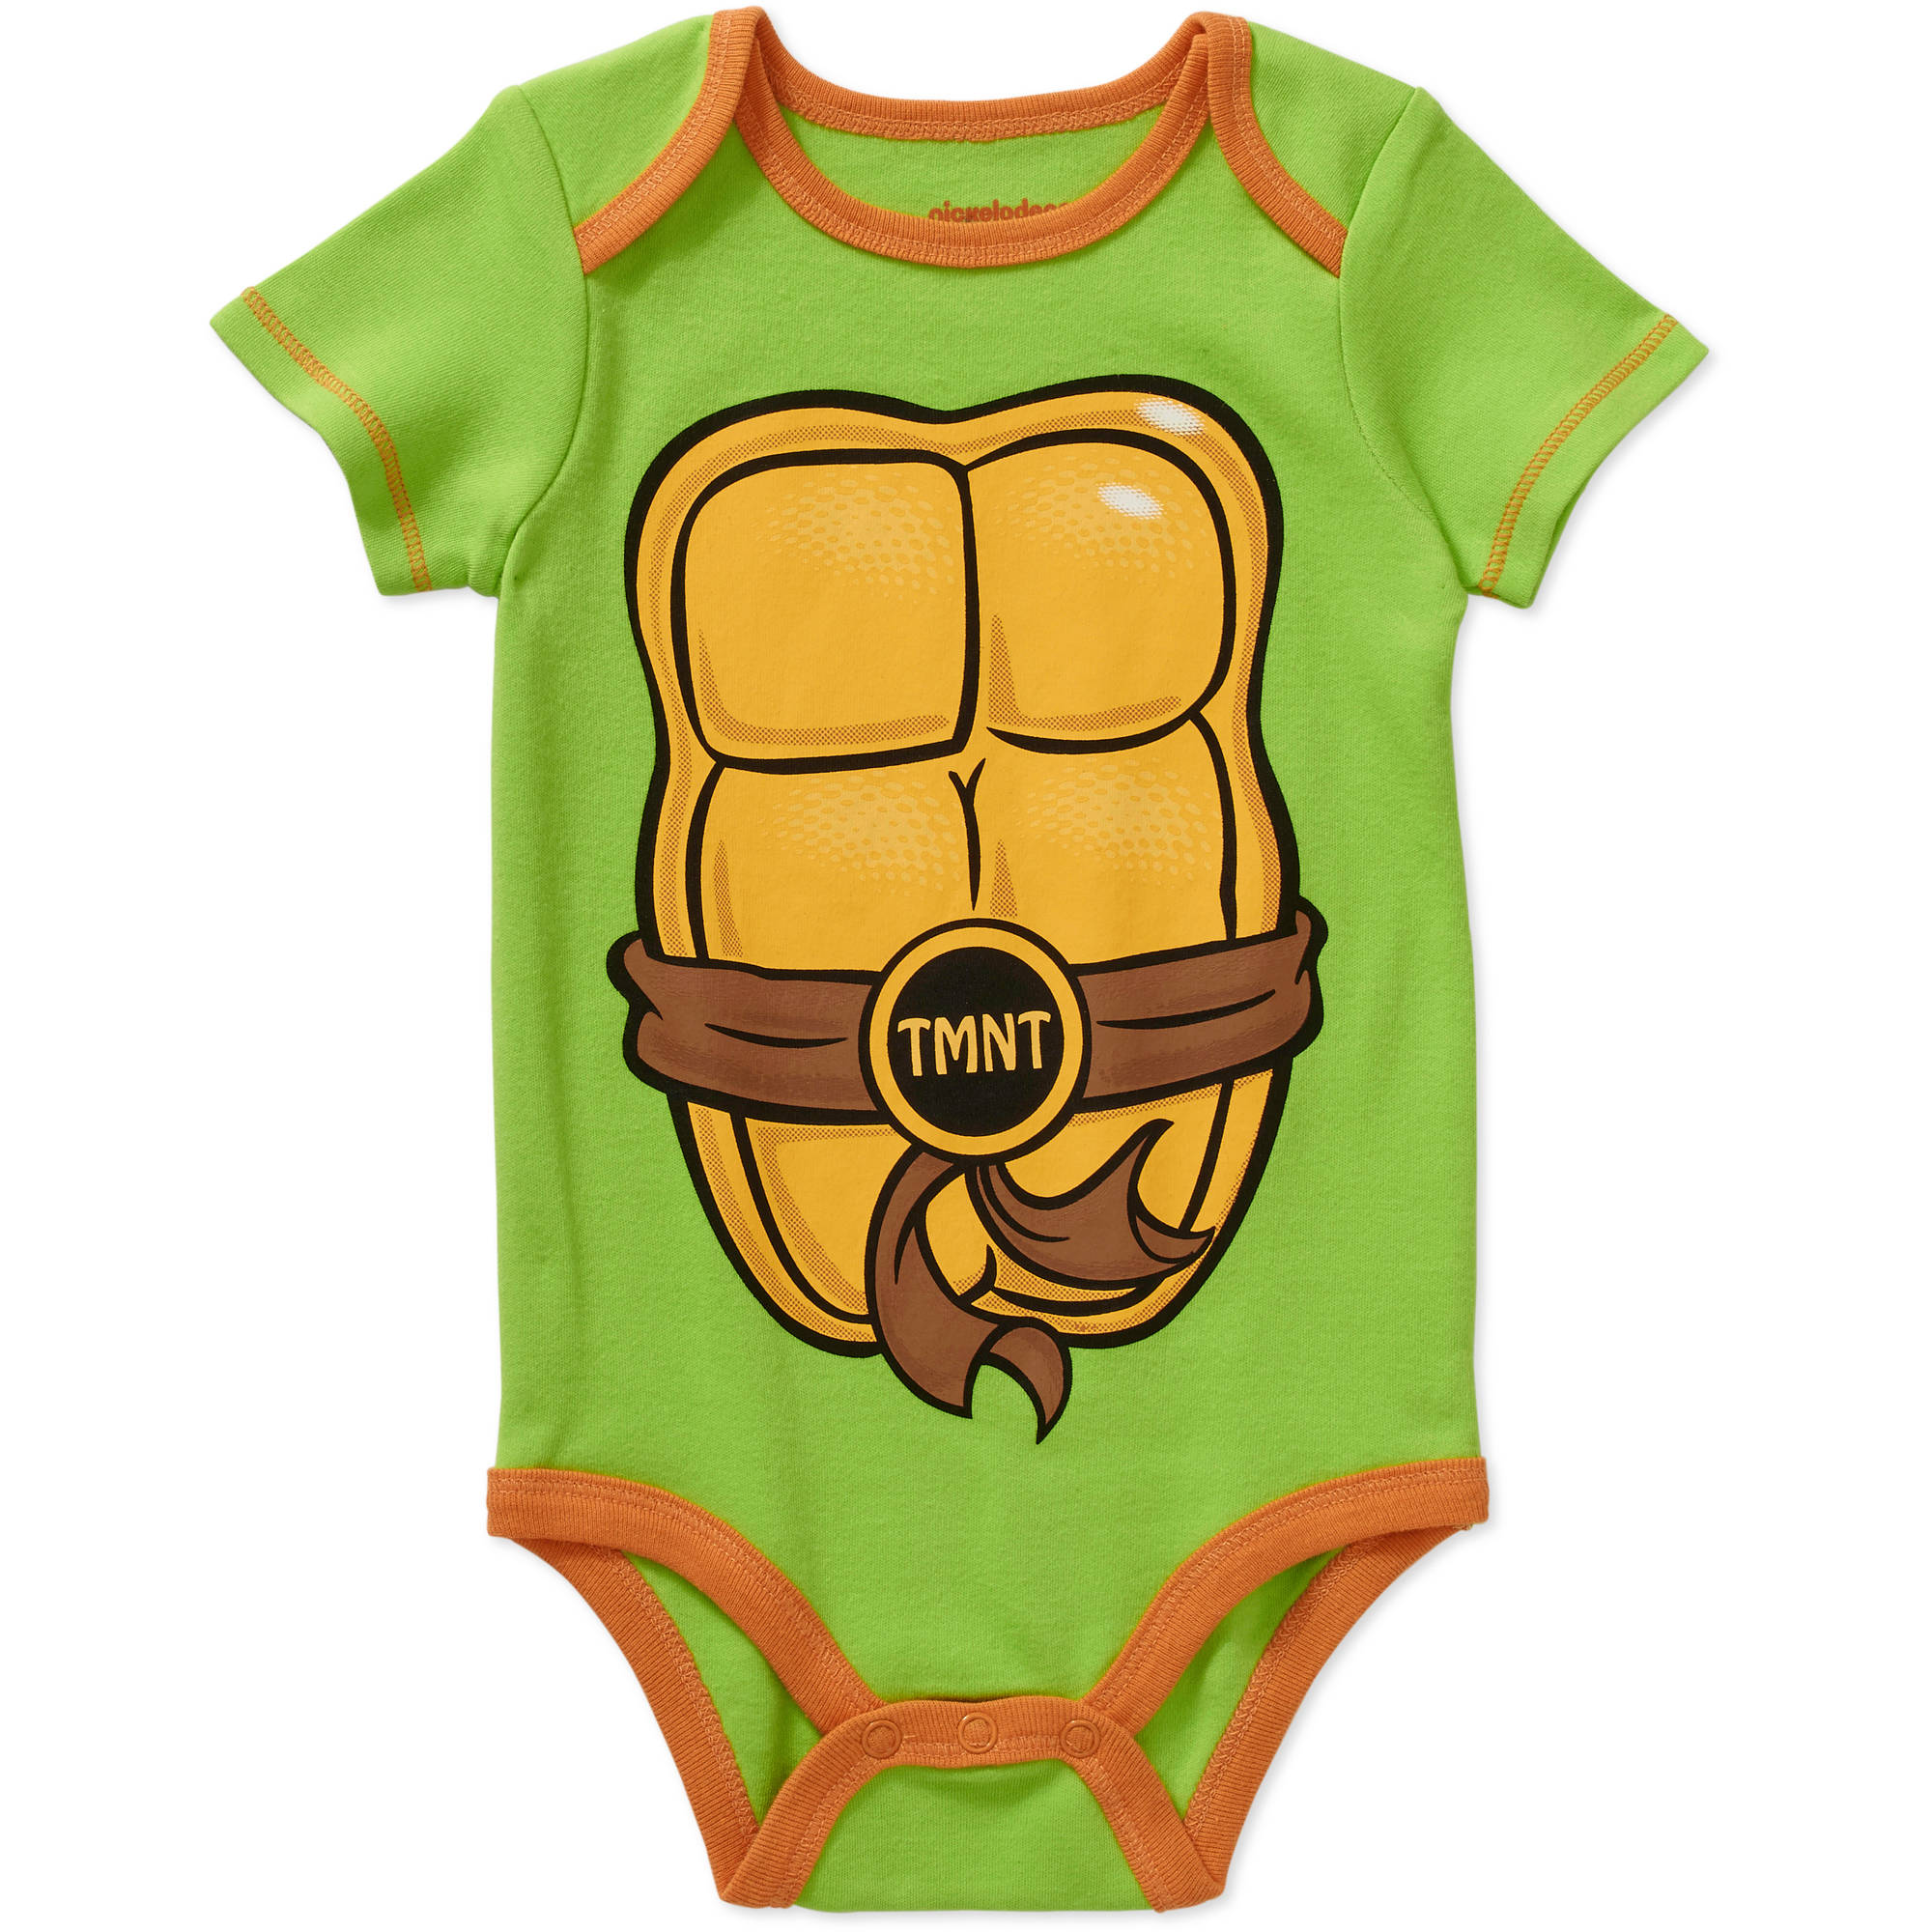 Teenage Mutant Ninja Turtles Newborn Baby Boy License Body Suit